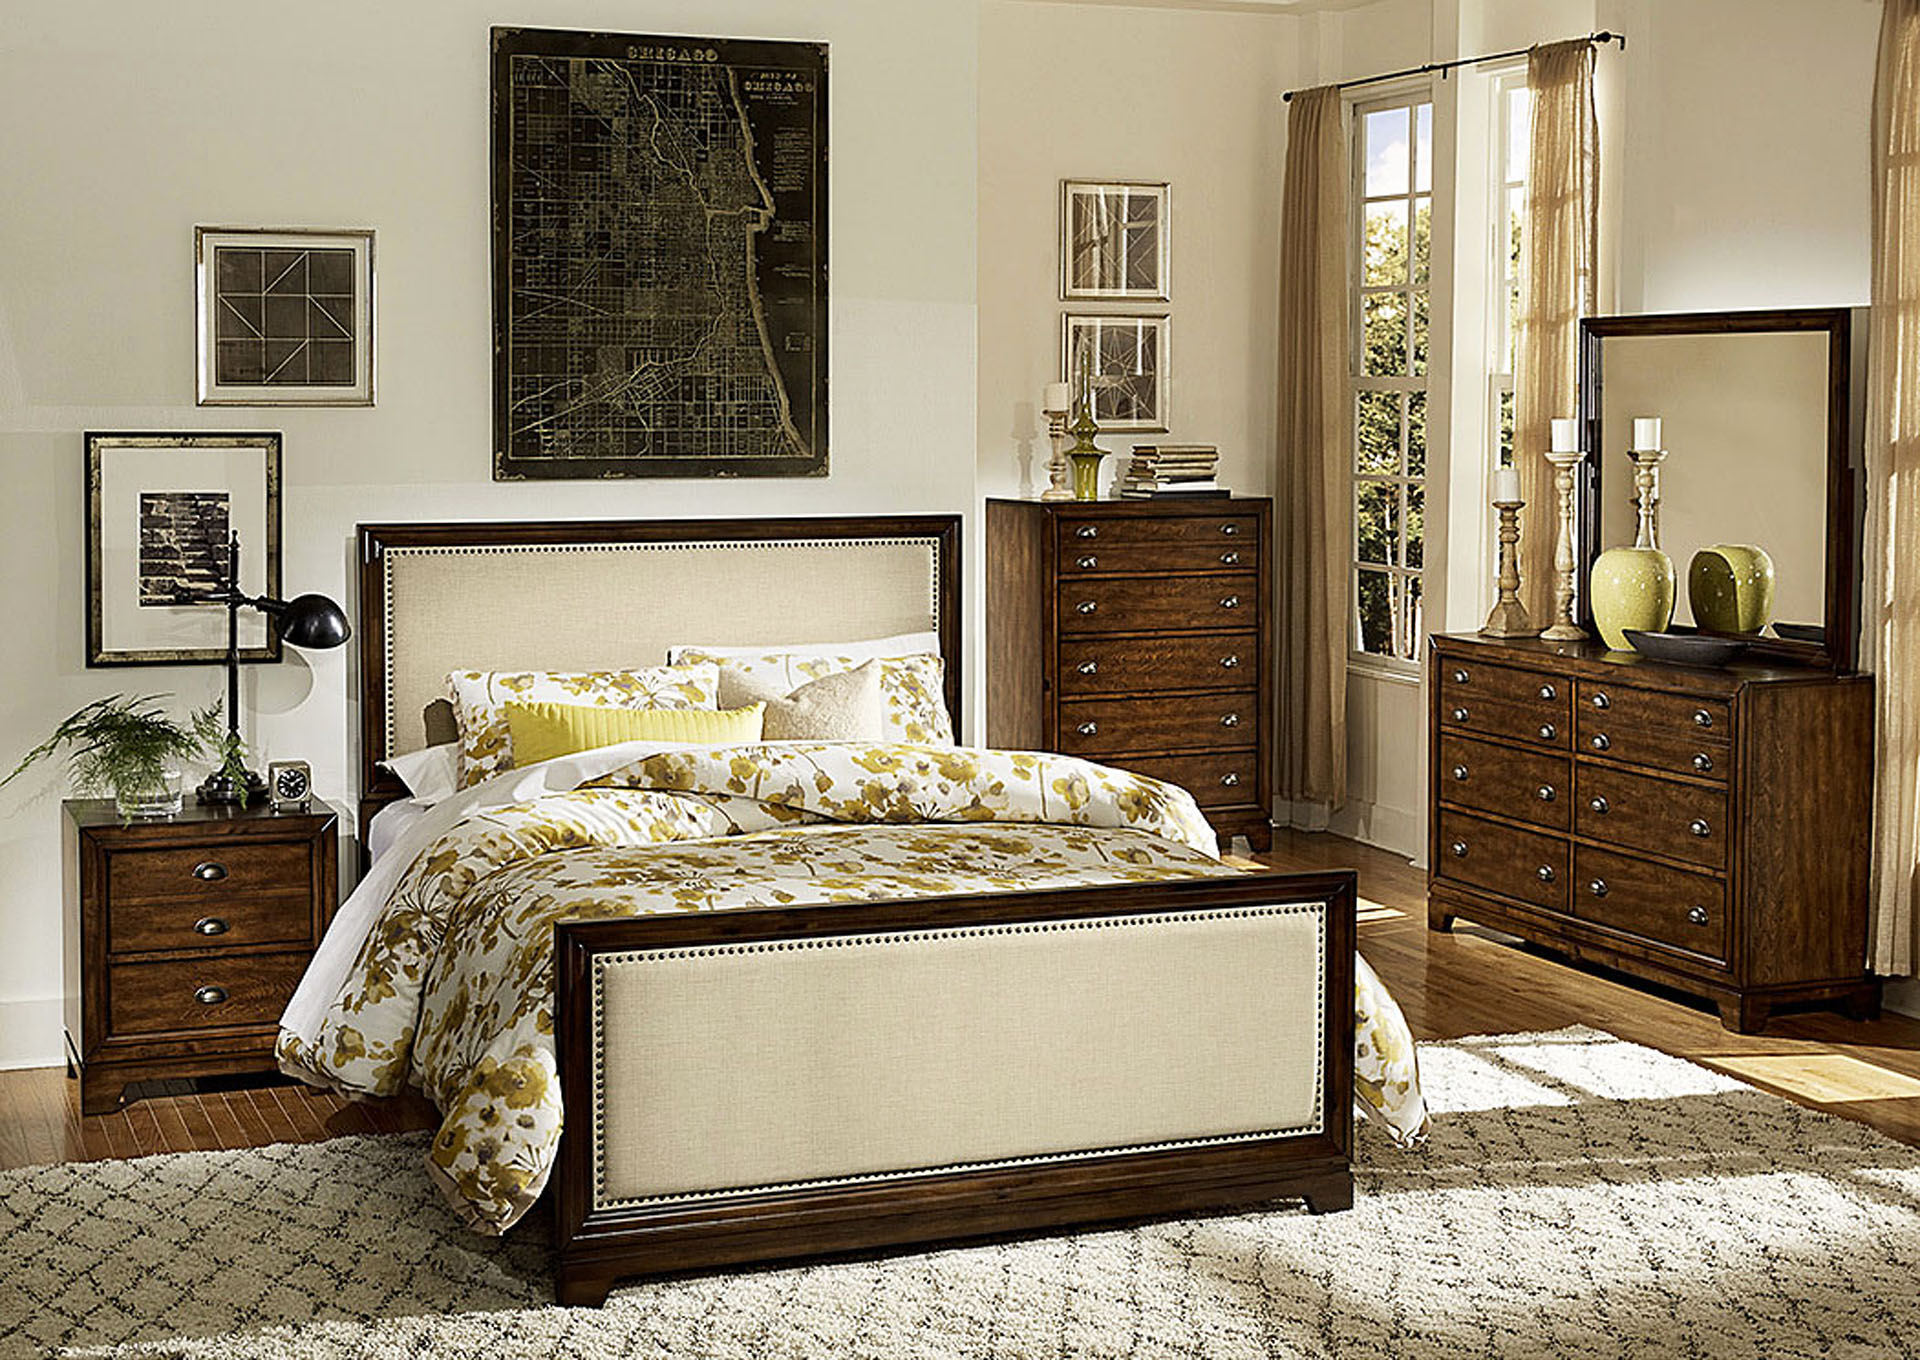 Bernal Heights Warm Cherry Upholstered Eastern King Bed,Homelegance